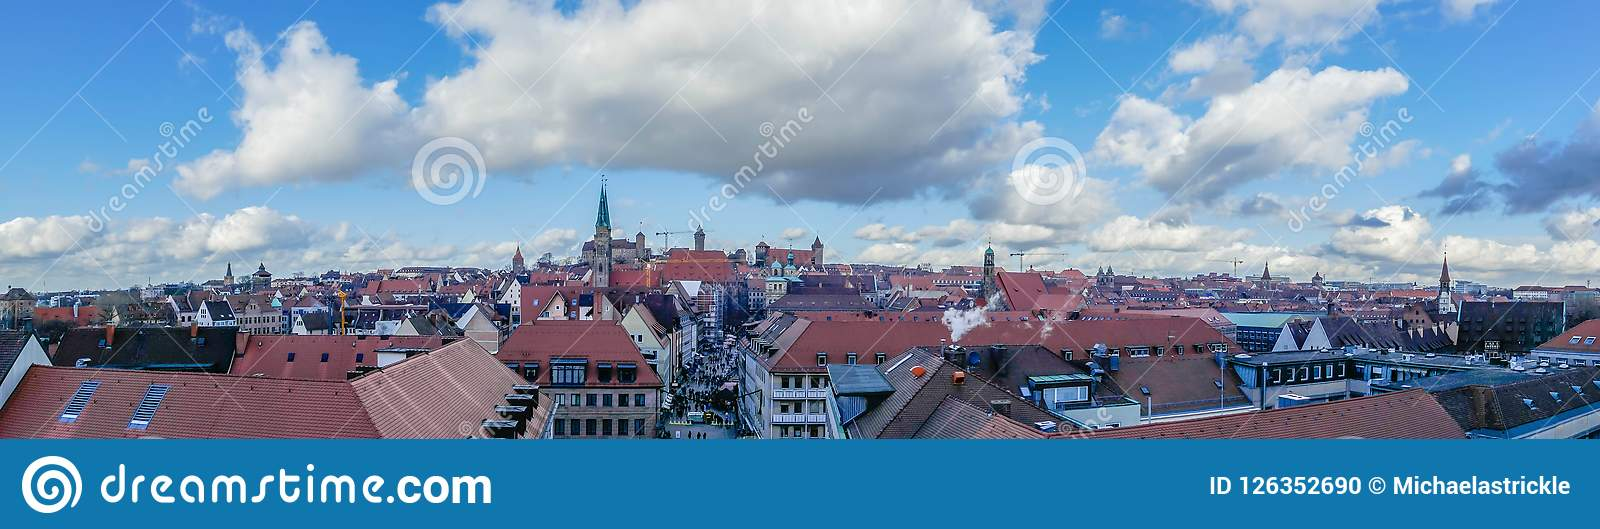 Nuremberg City from above